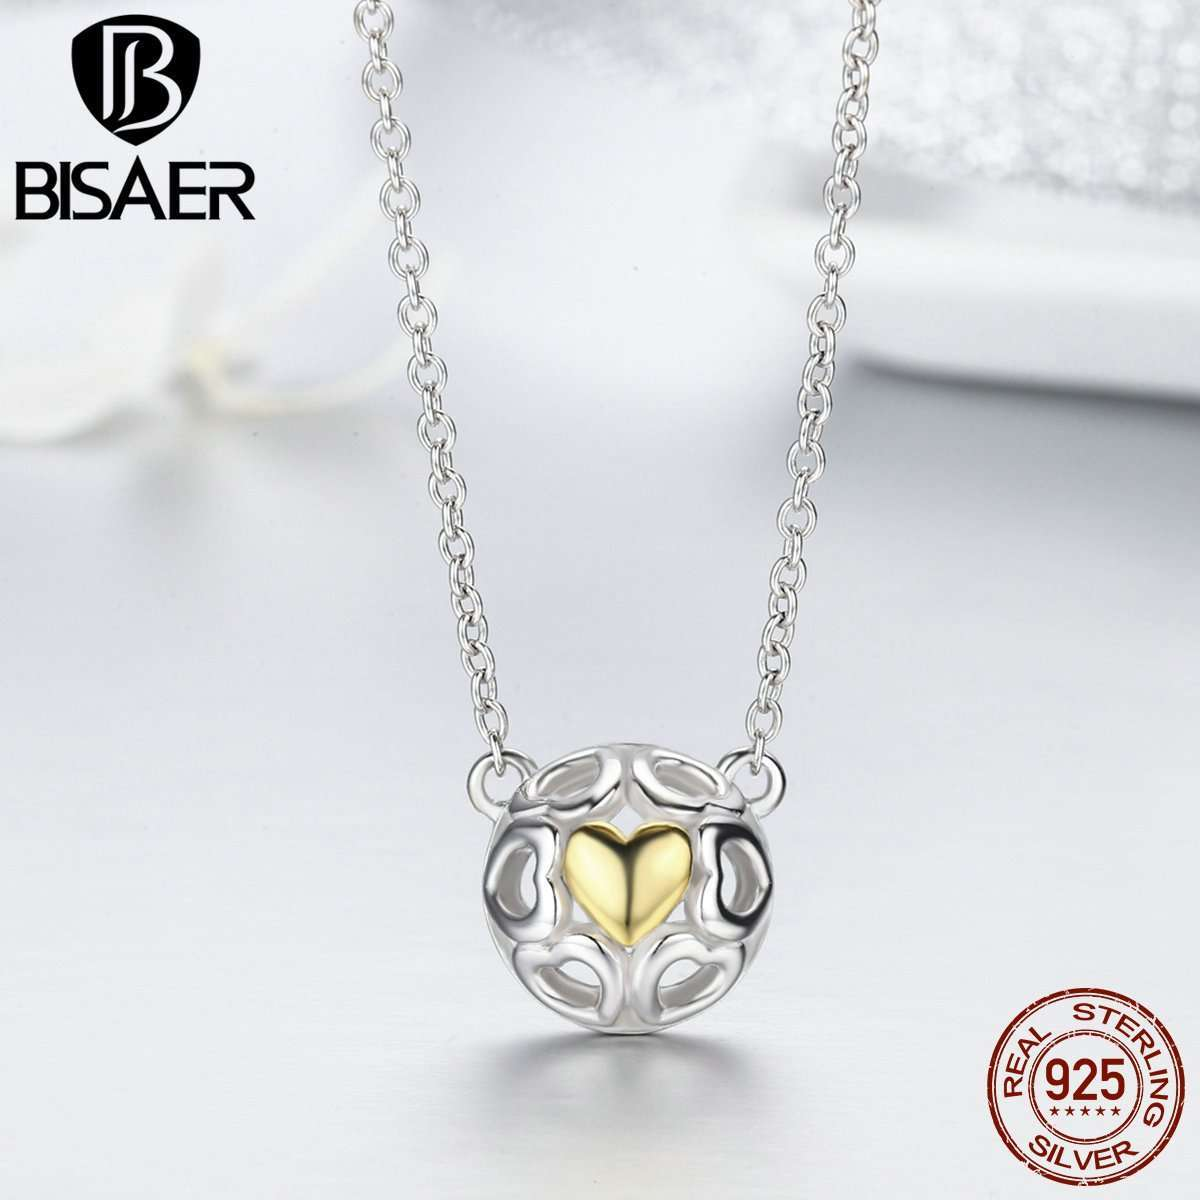 100% Real 925 Sterling Silver Love Openwork Heart Pendant Necklaces